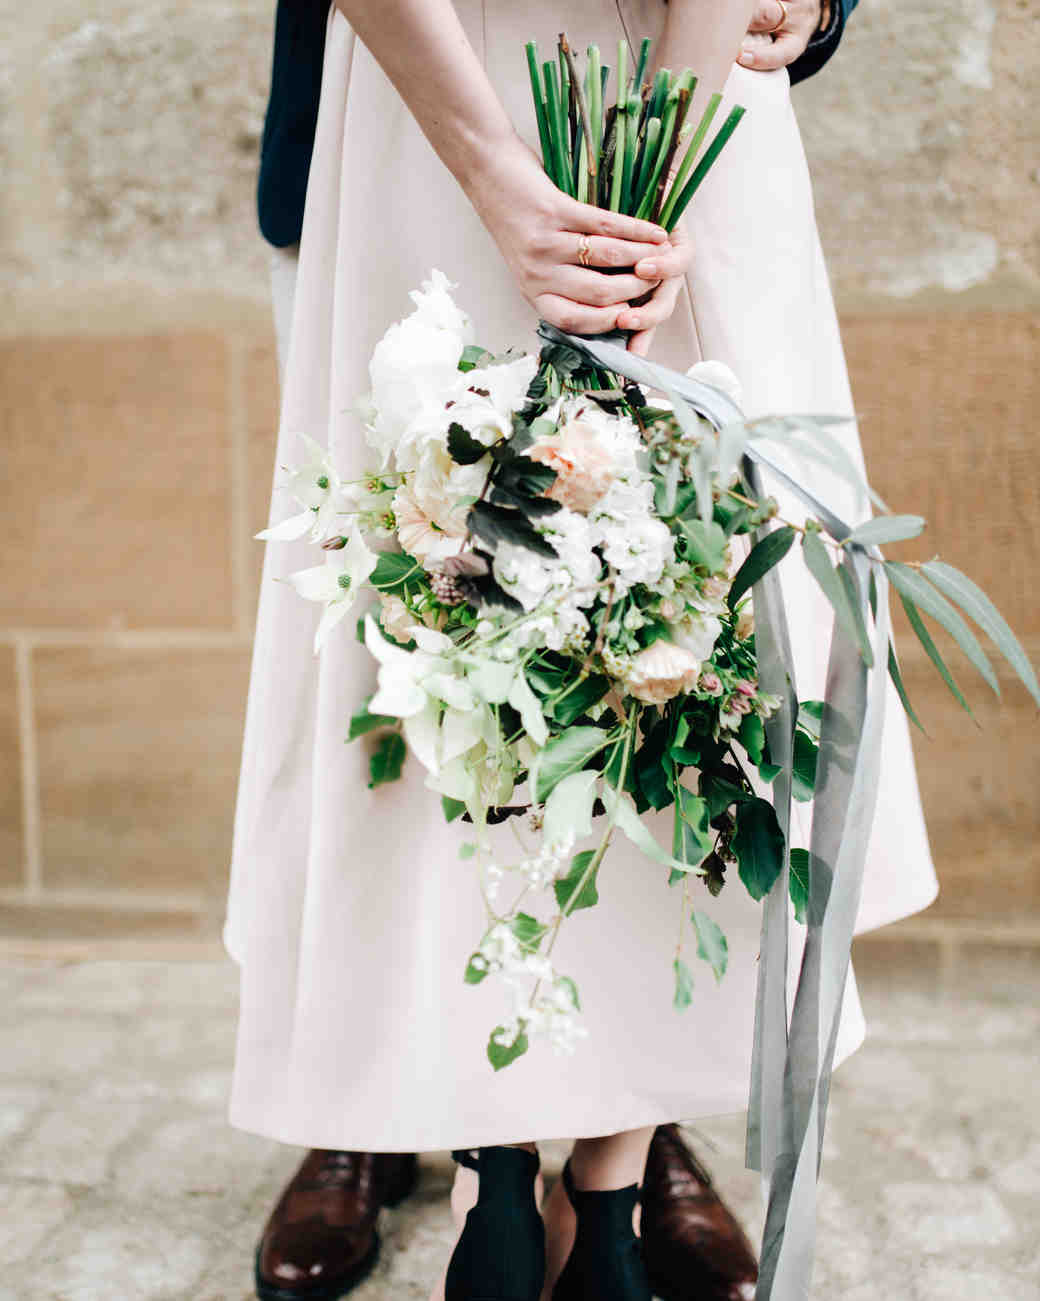 bride holding long-stemmed bouquet behind her back